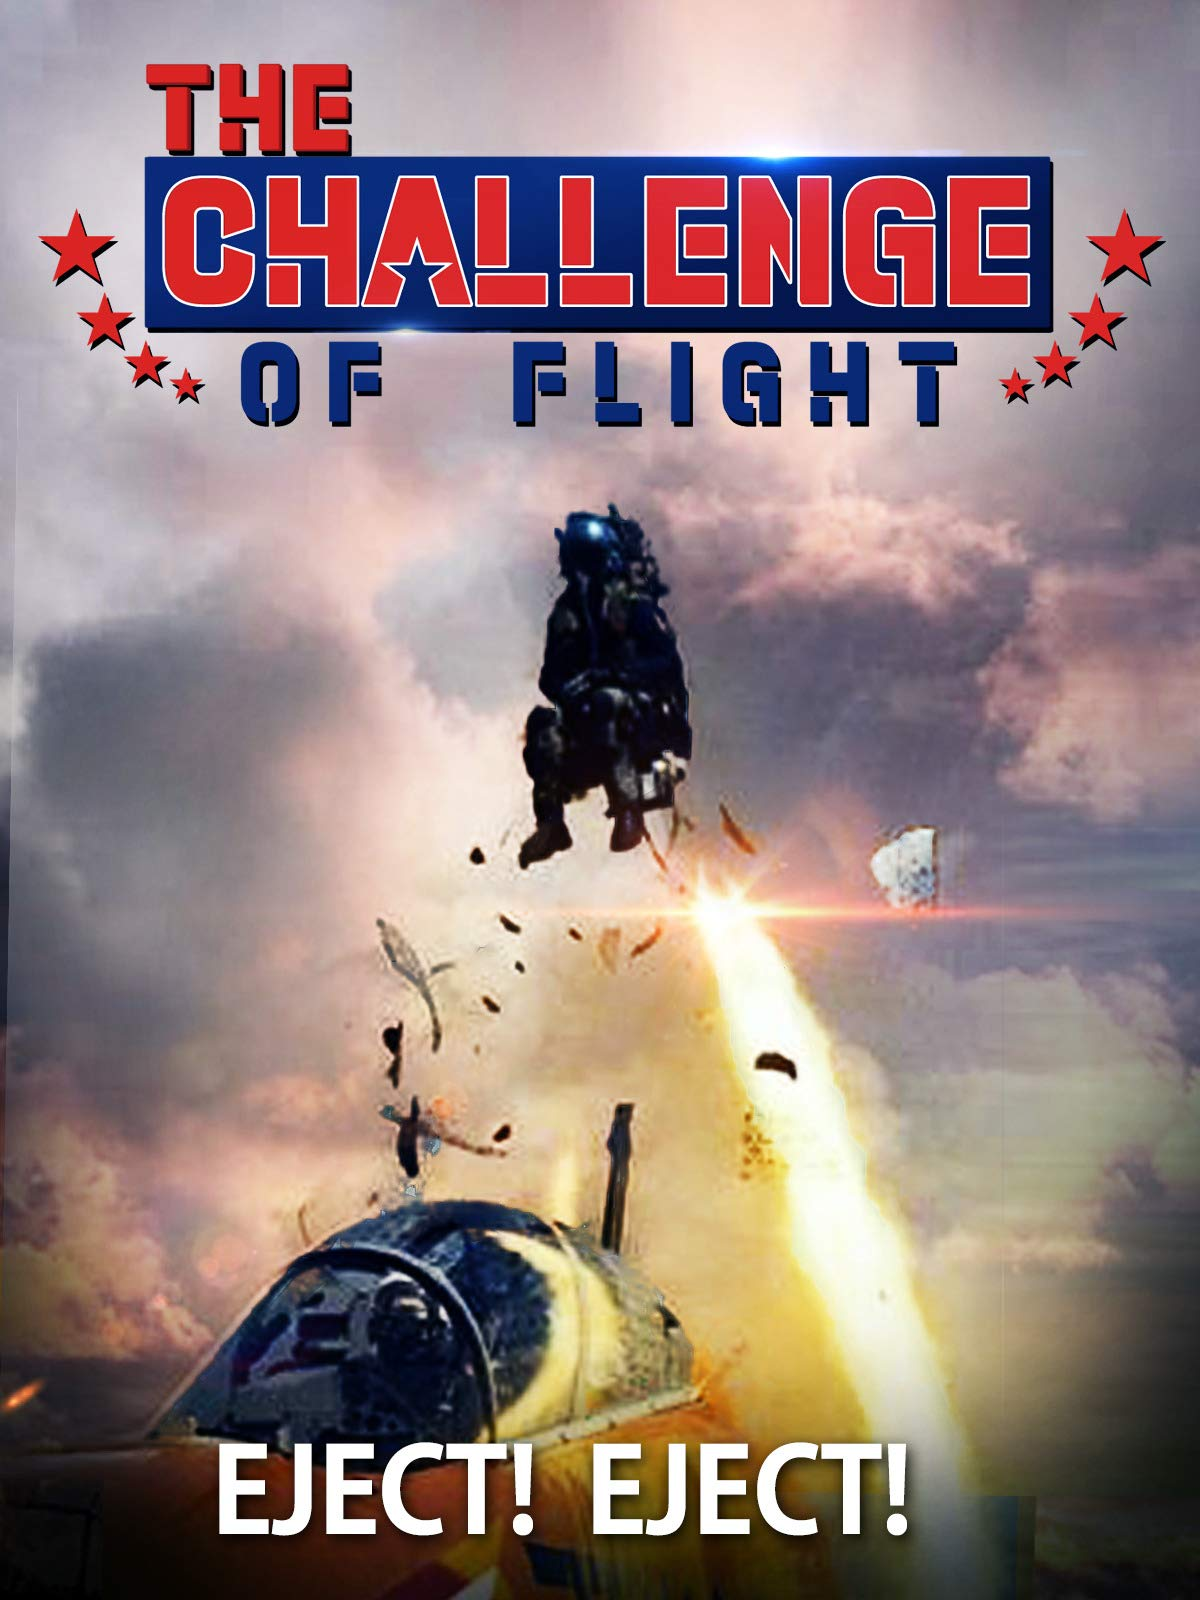 The Challenge of Flight - Eject! Eject!